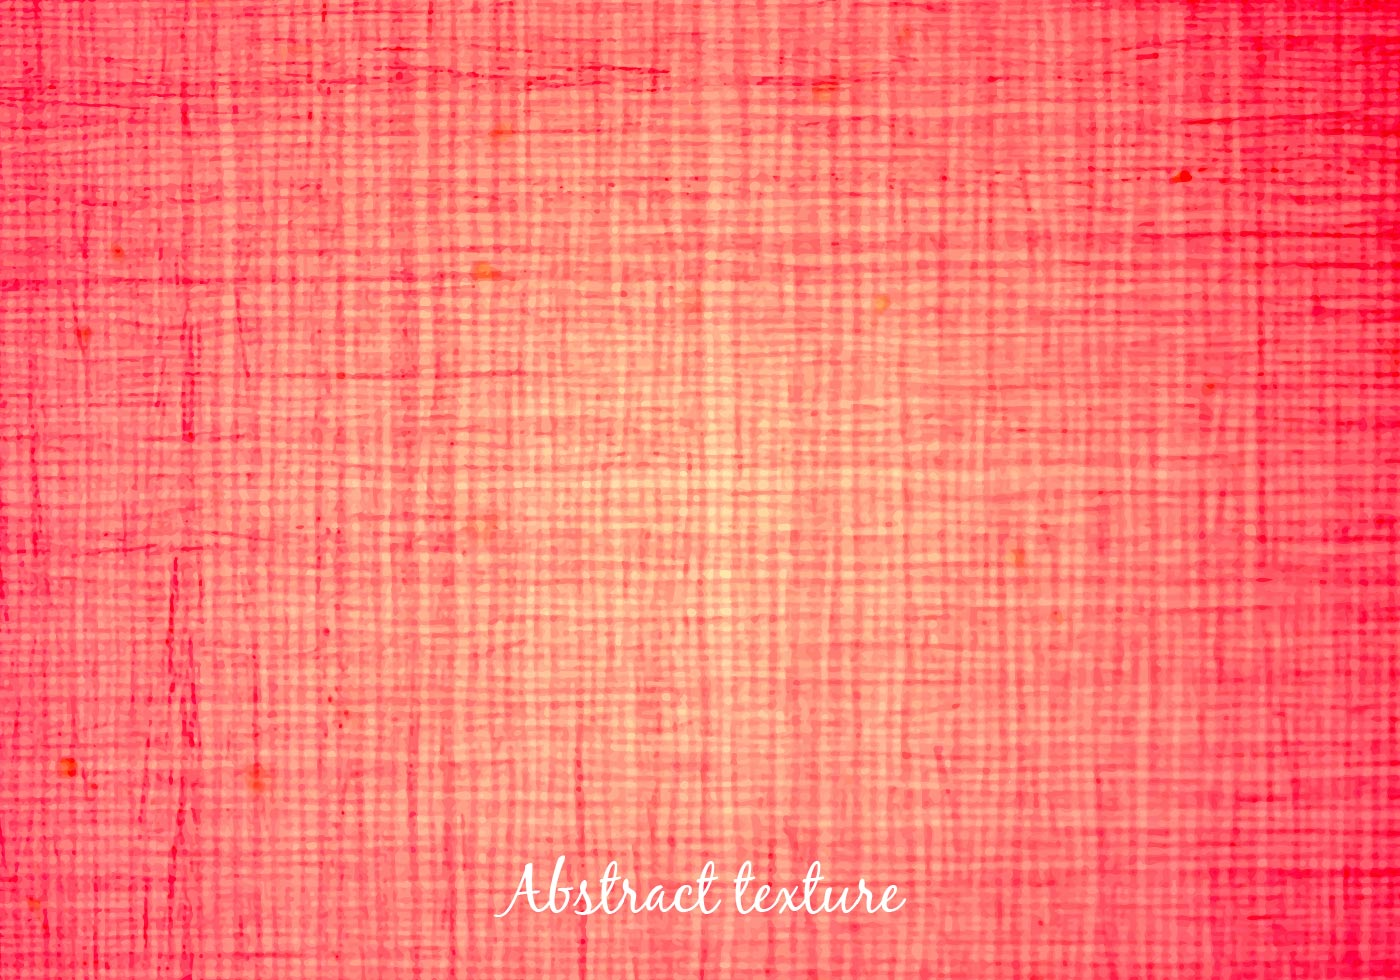 free vector abstract fabric texture